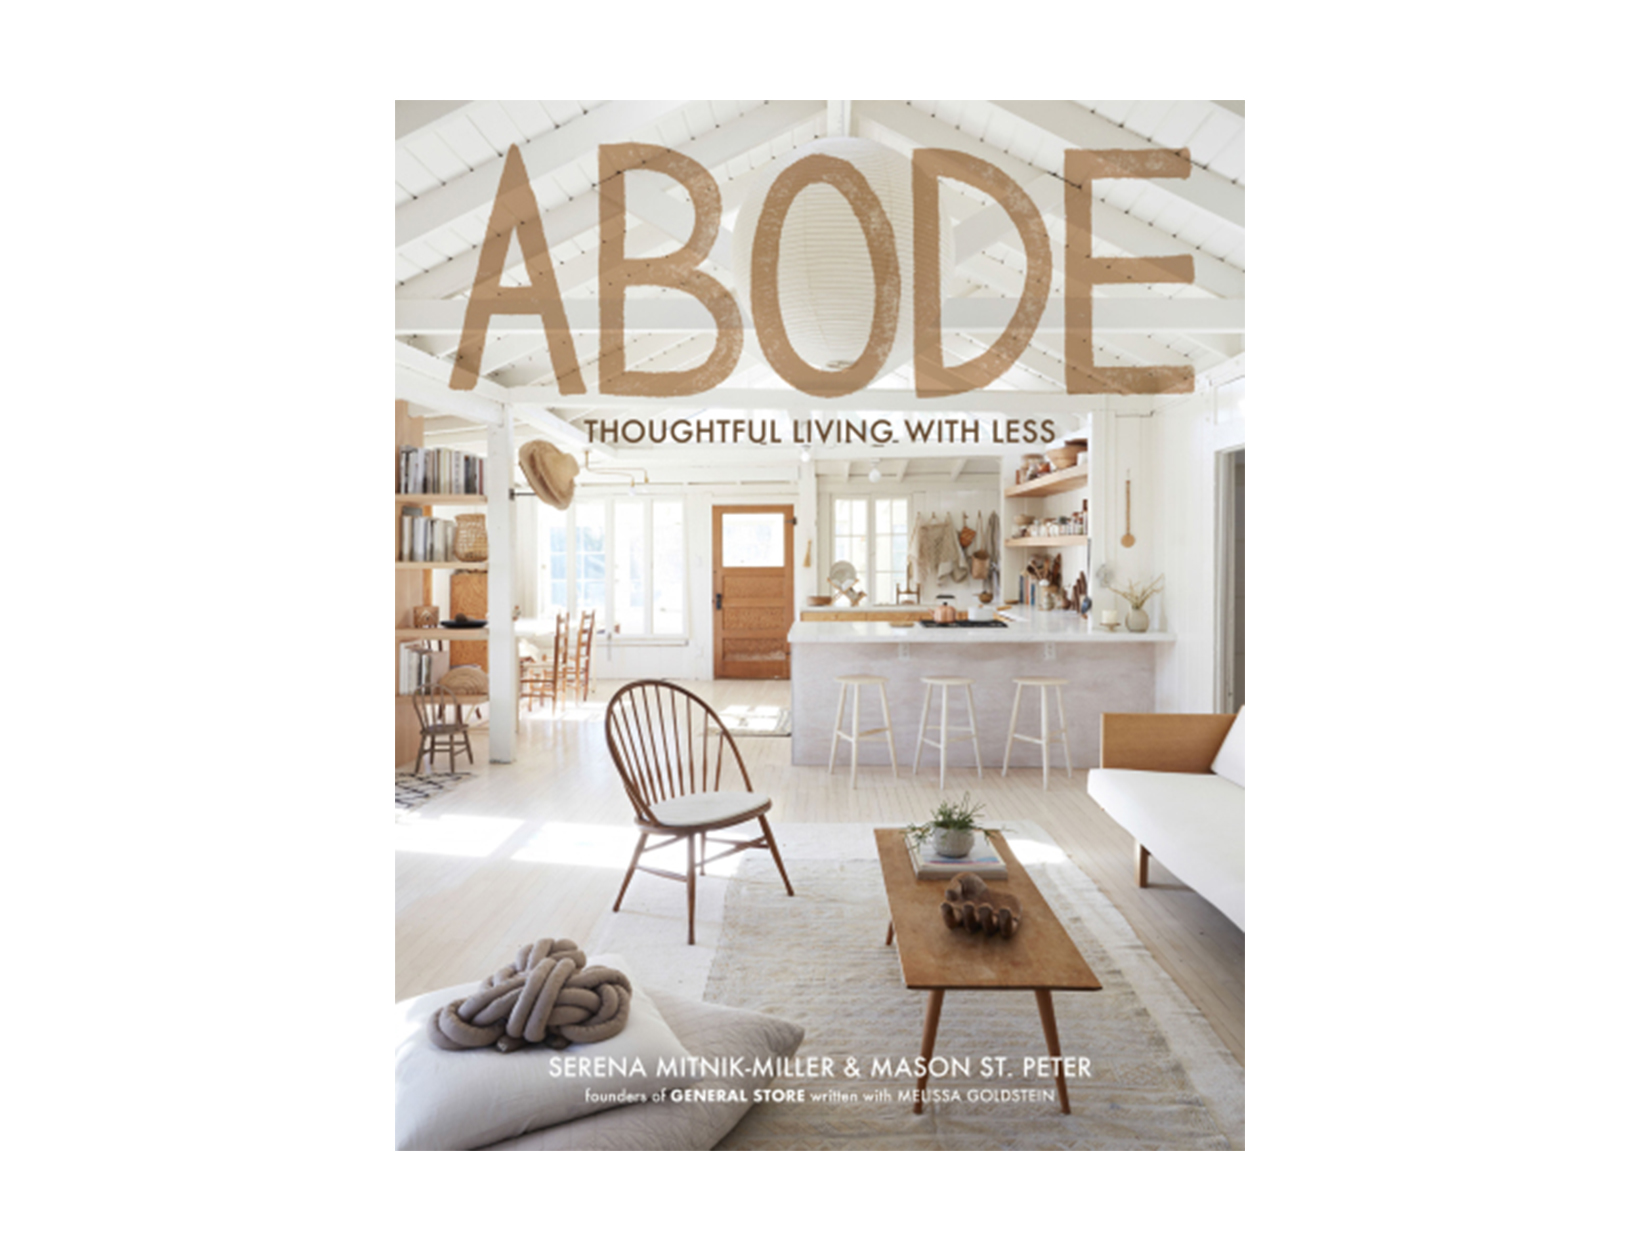 <em>Abode</em> by Serena Mitnik-Miller and Mason St. Peter